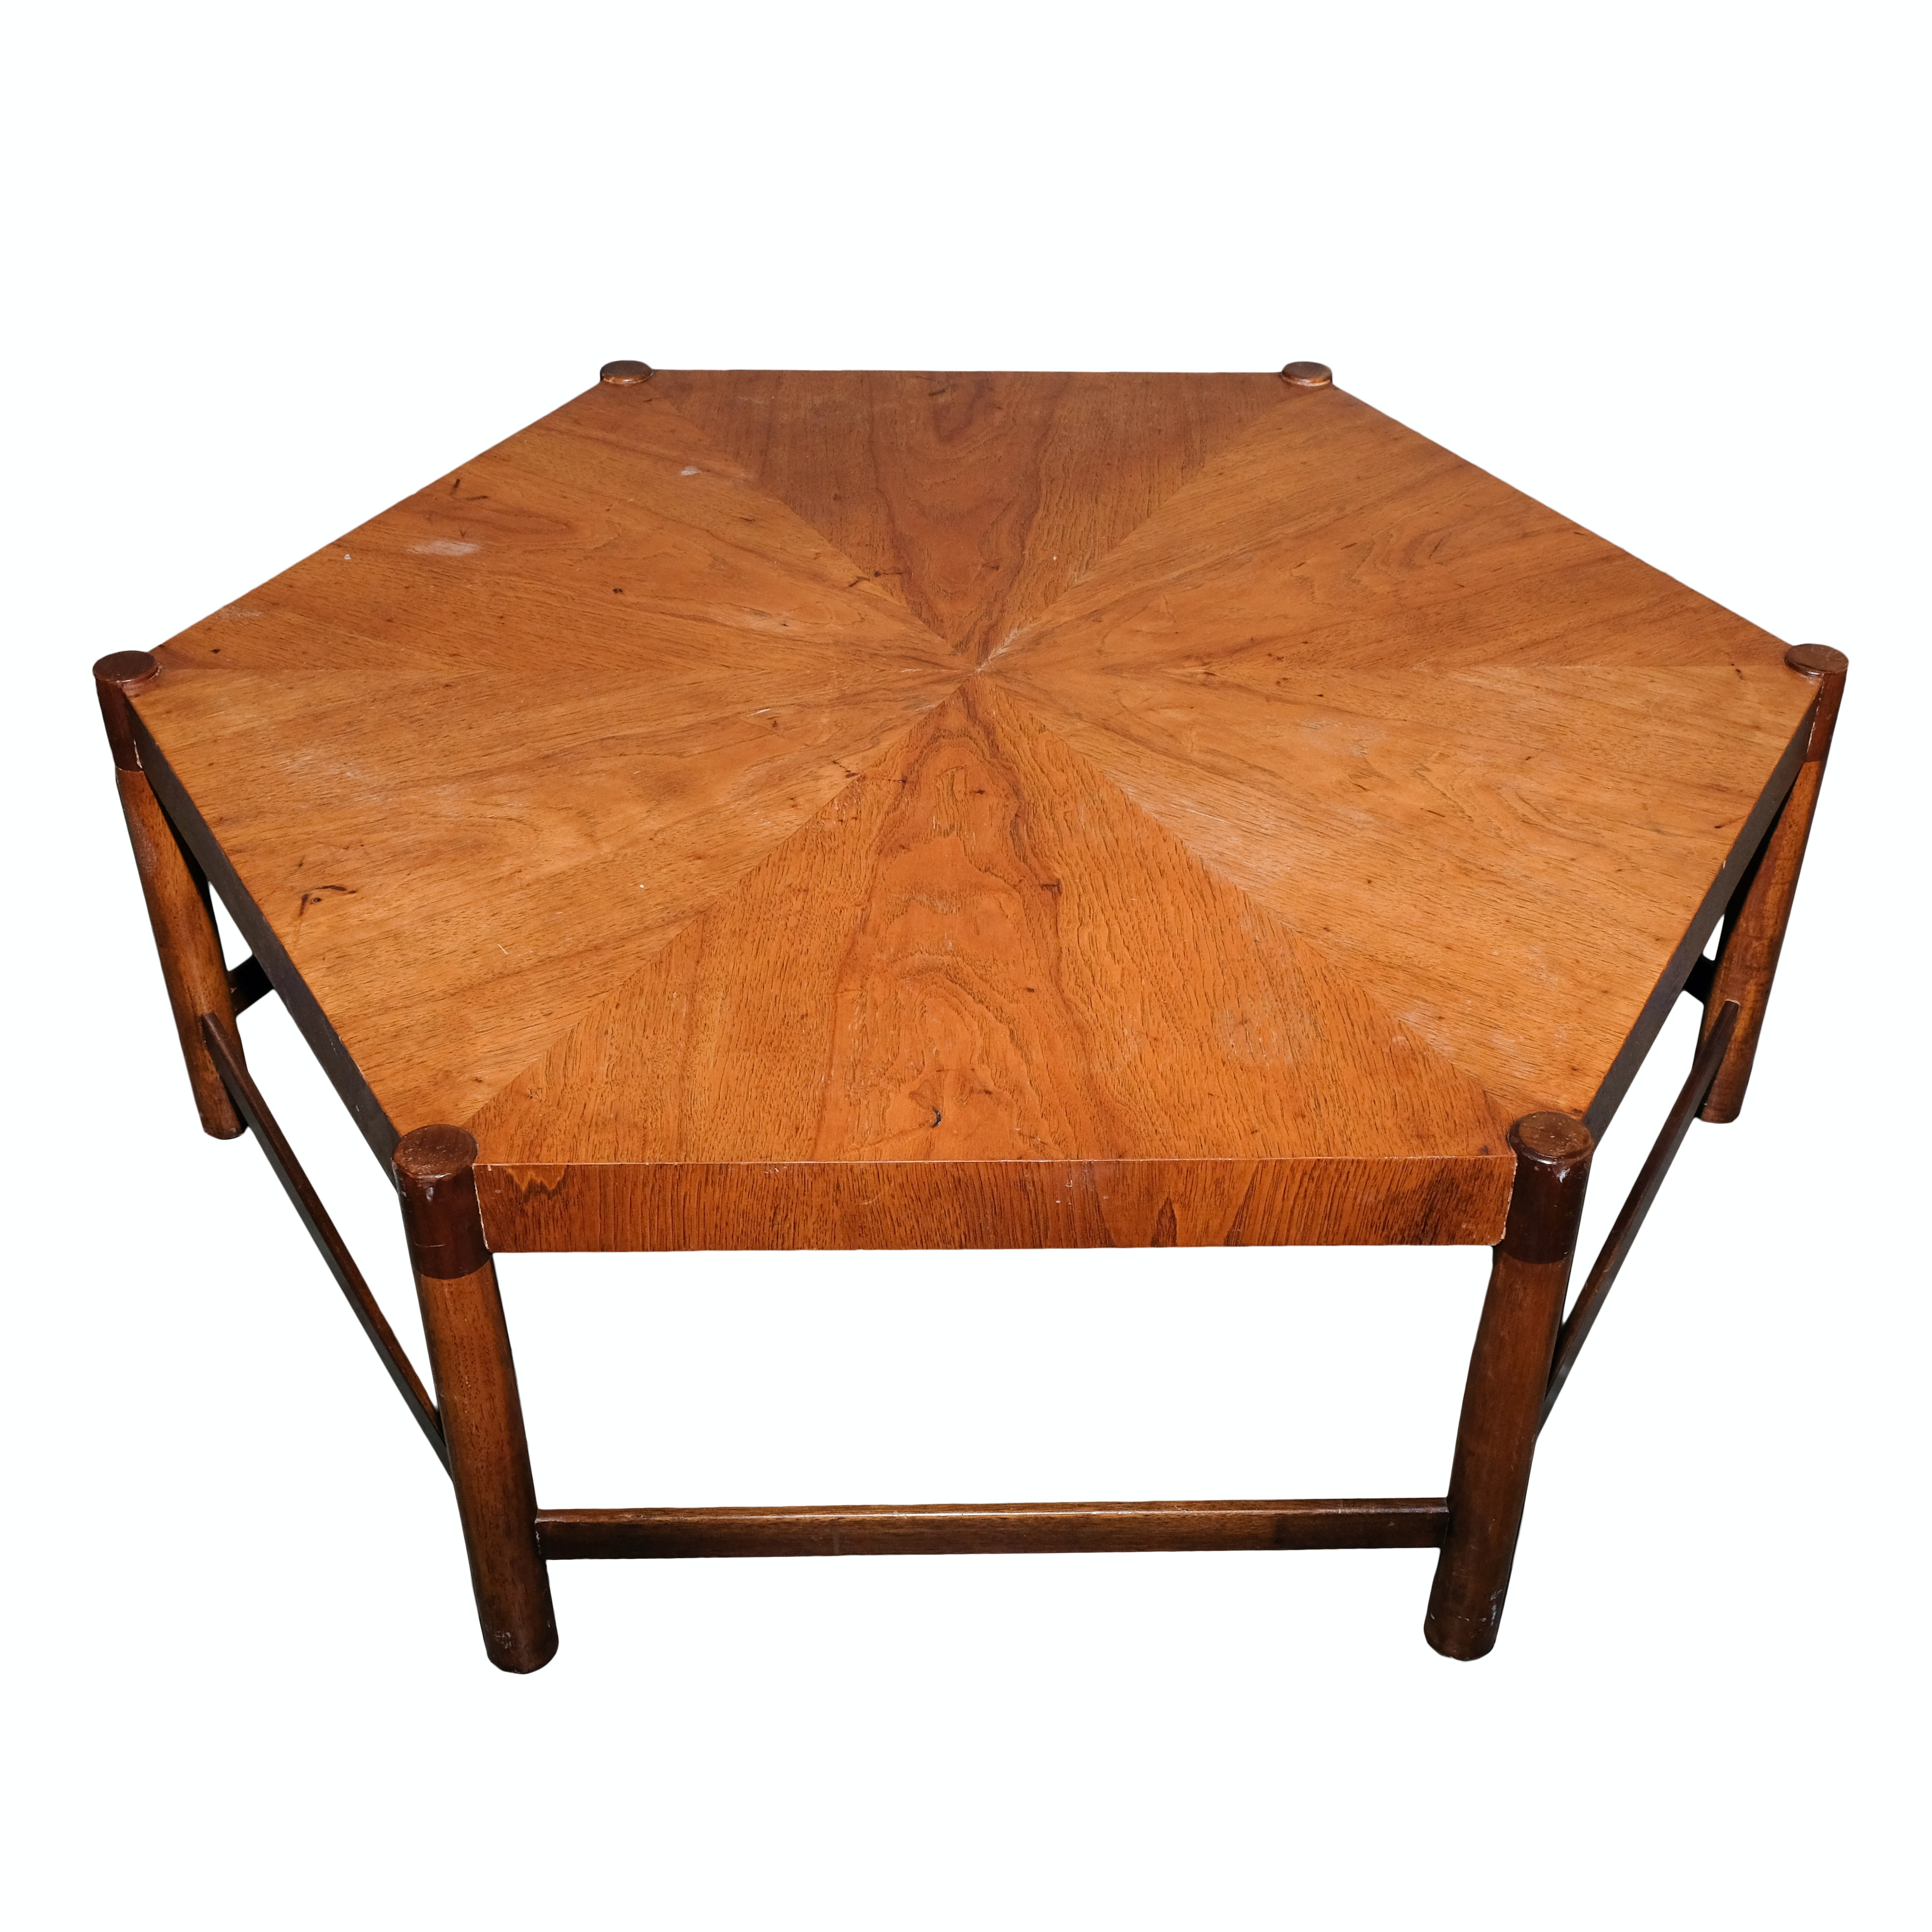 Hexagonal Coffee Table Midcentury Hexagonal Side Table By Hans C Andersen For Artex For With